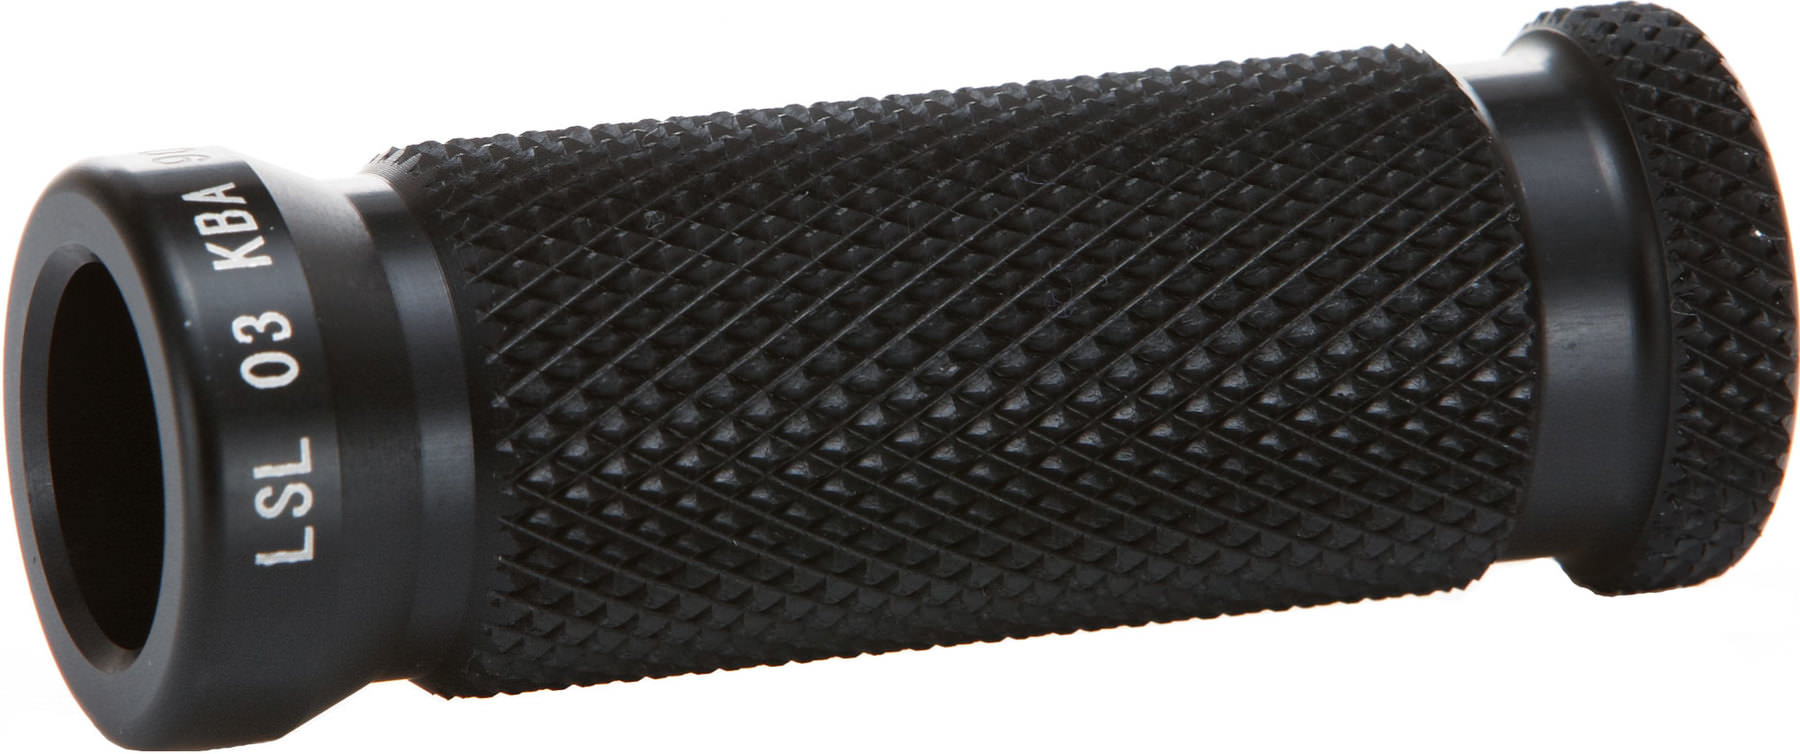 Buy Lsl Racing Footrest Alu Pair With Abe Louis Motorcycle Clothing And Technology